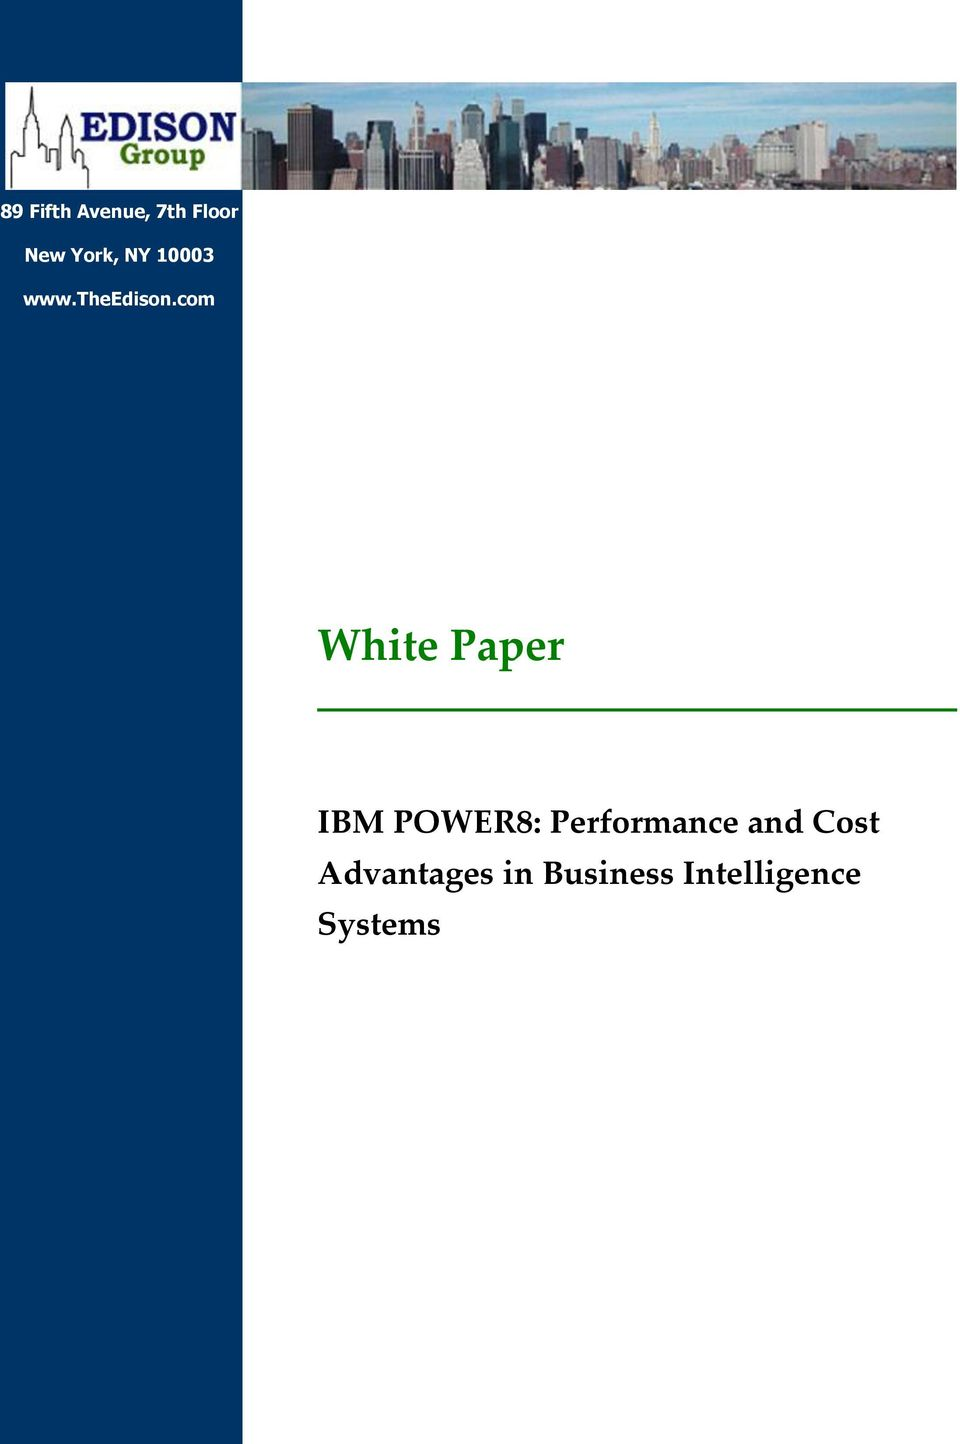 7400 Start: 3:02 End: White Paper IBM POWER8: